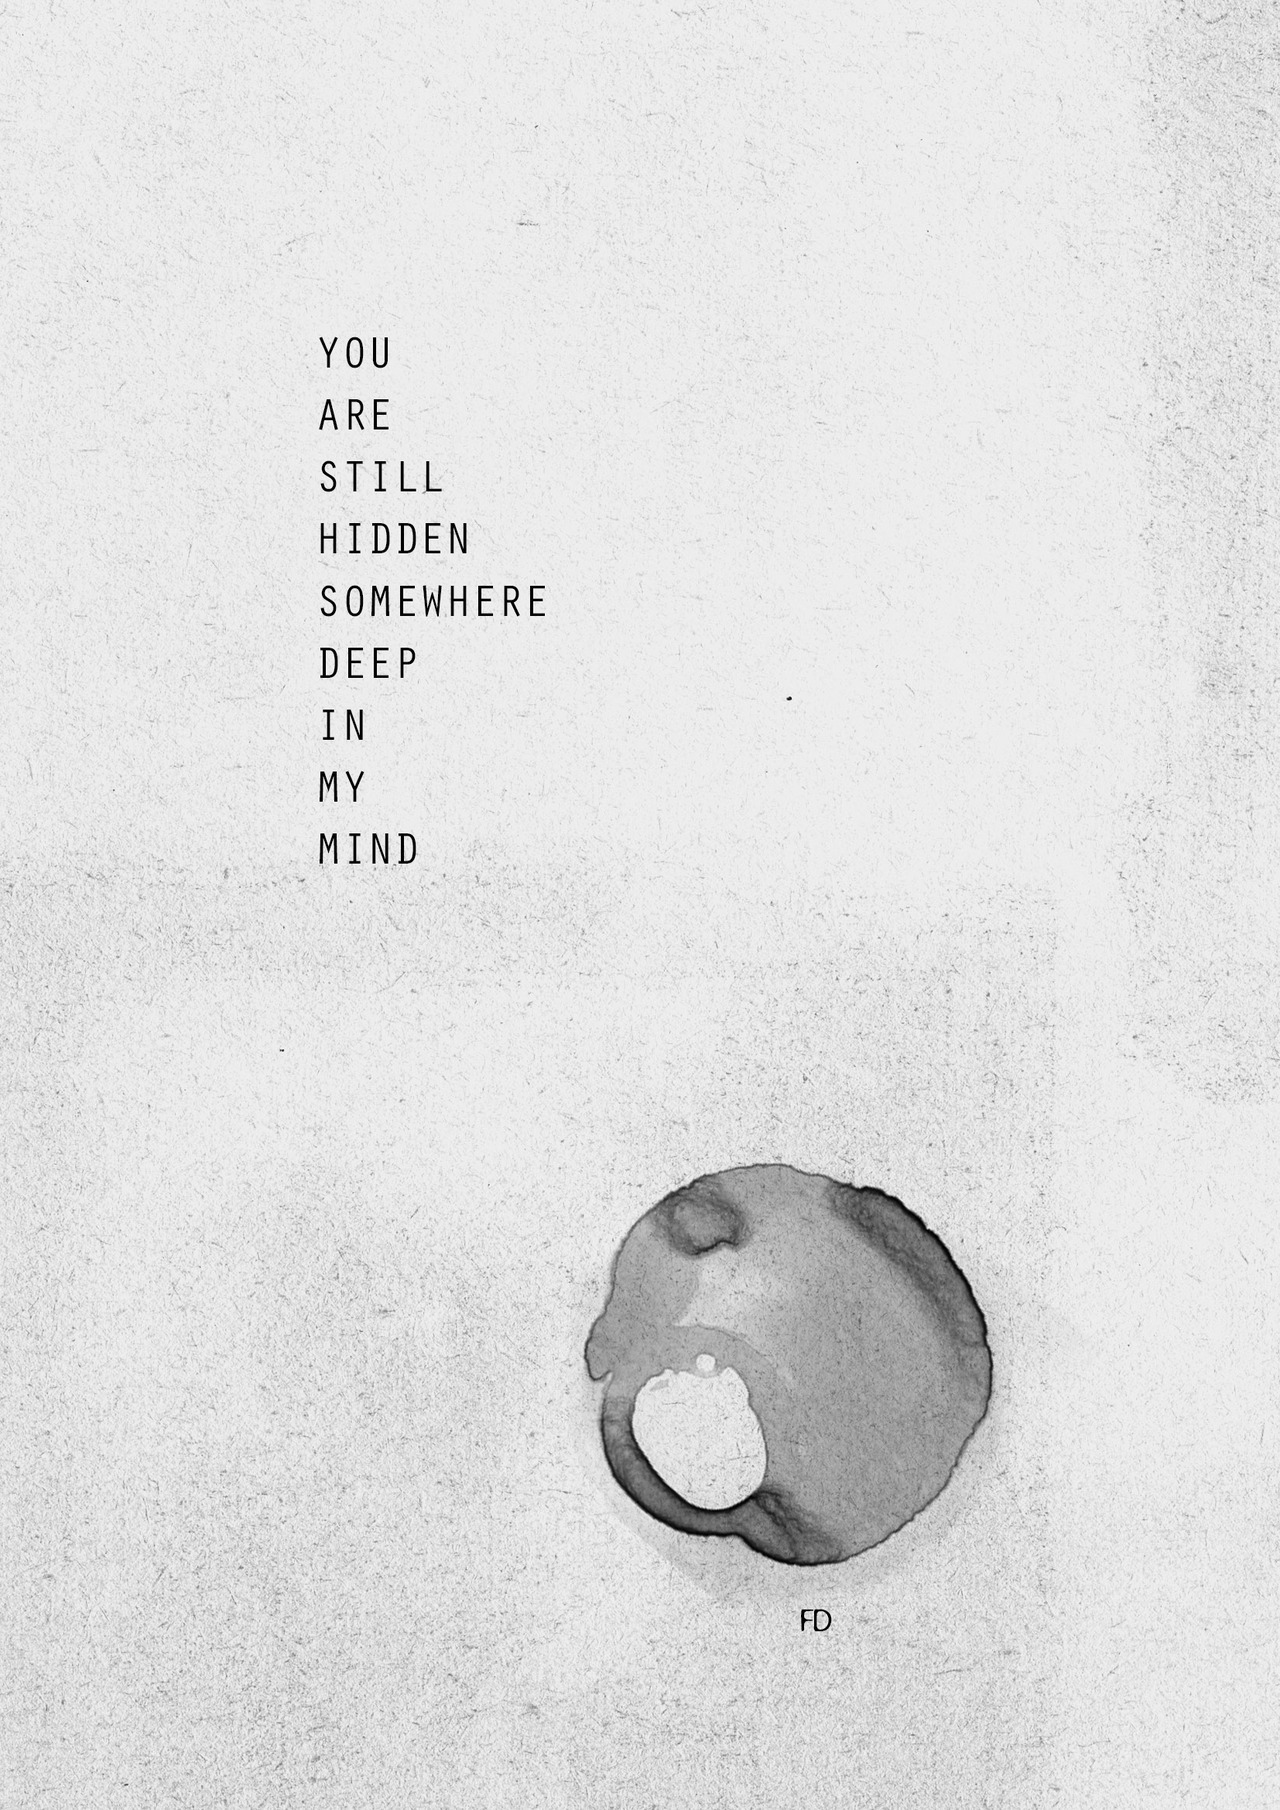 visualgraphic:  You are still hidden